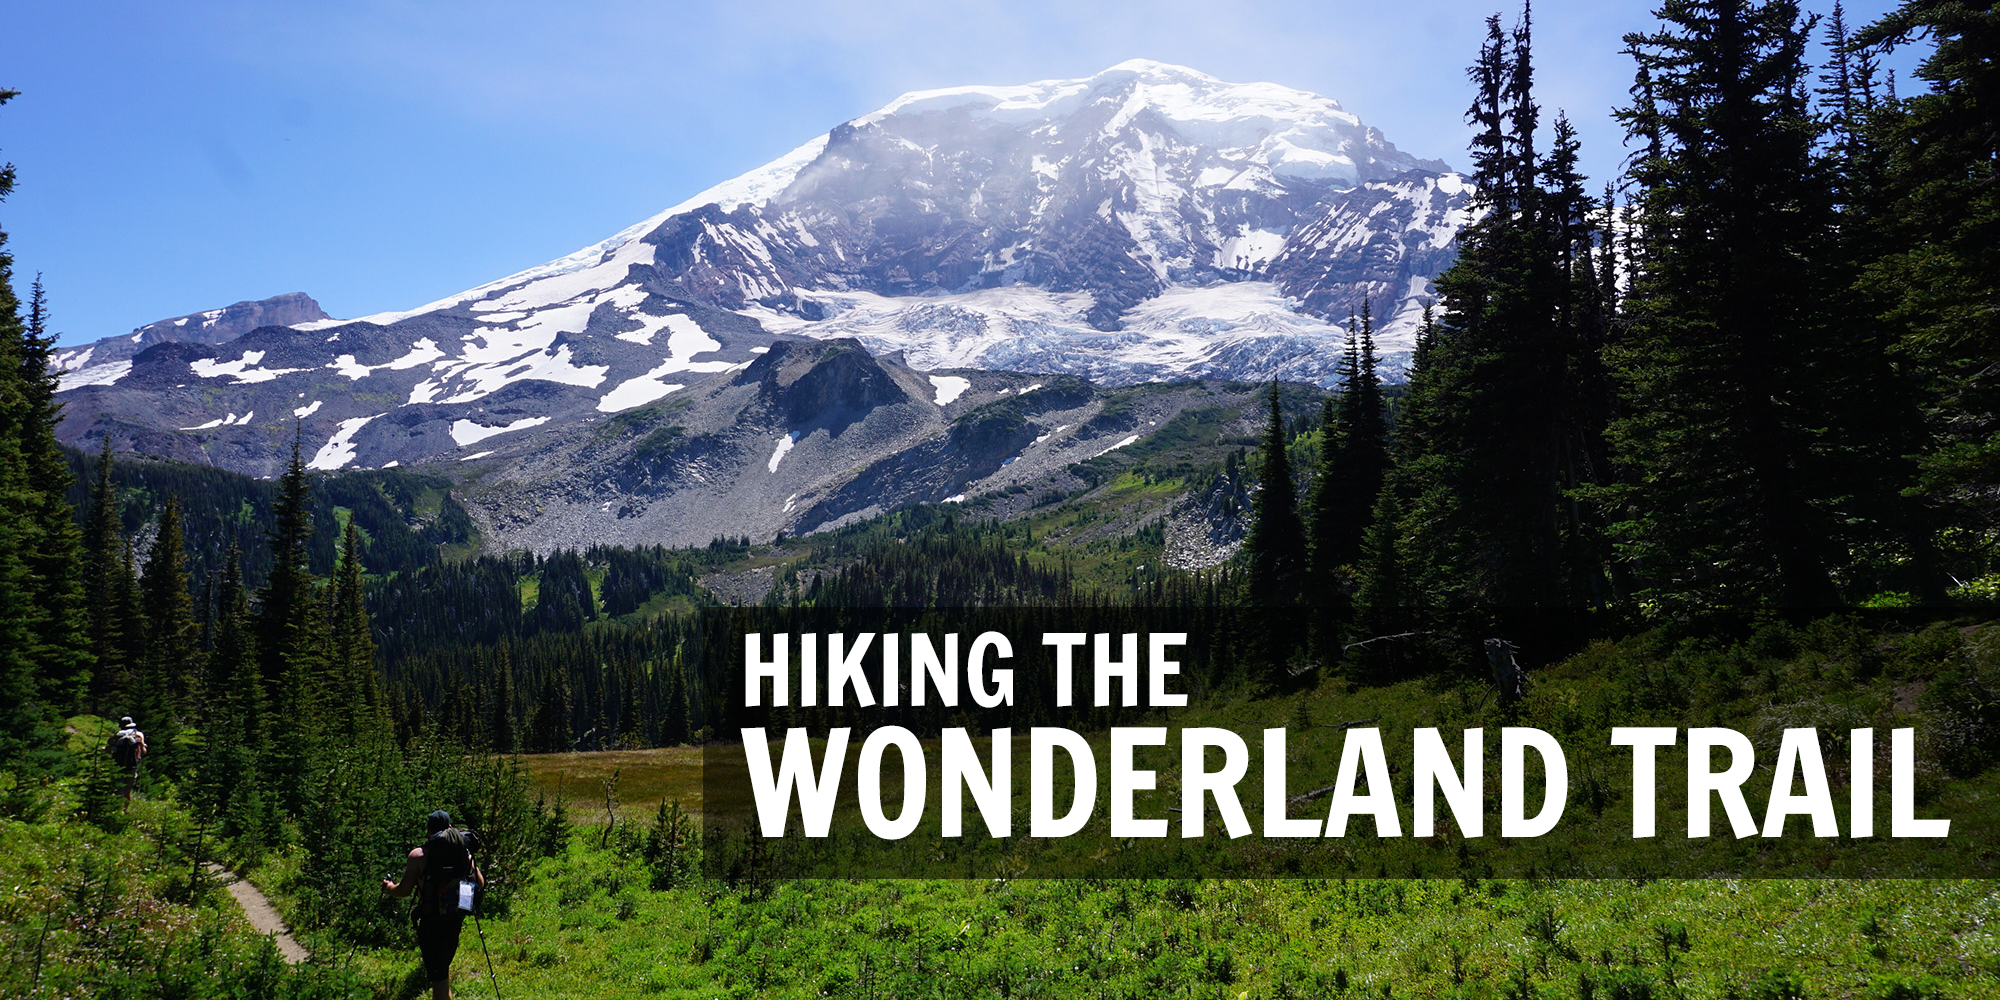 How to Thru-Hike the Wonderland Trail (An Unconventional, Photo-Heavy Guide) - The Trek